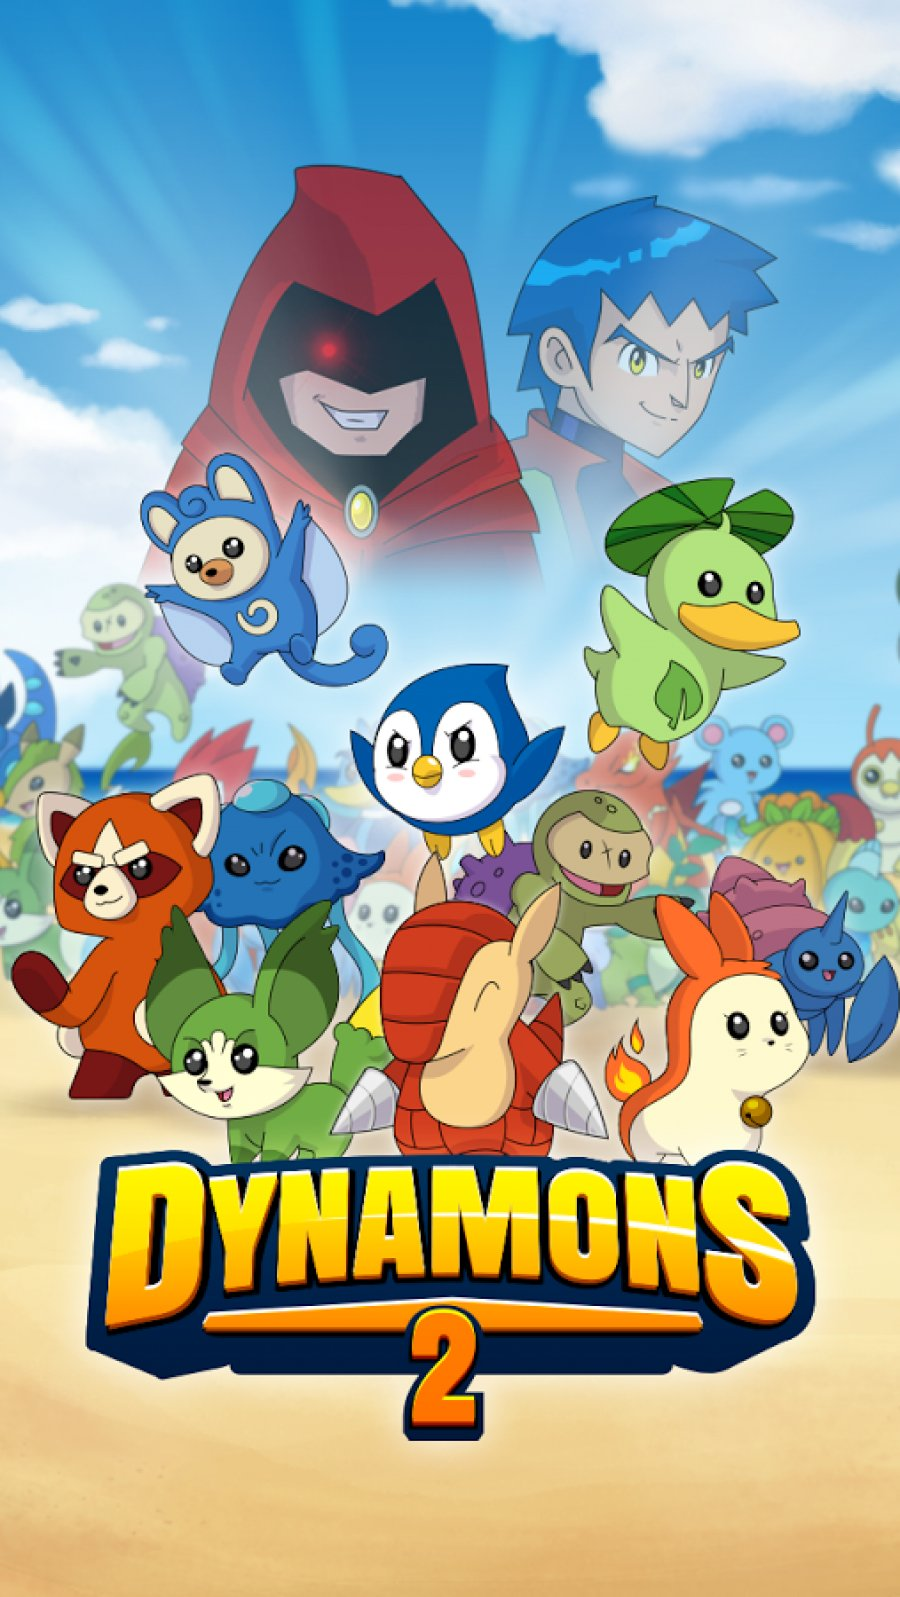 Dynamons 2 1.1.0 for Android.